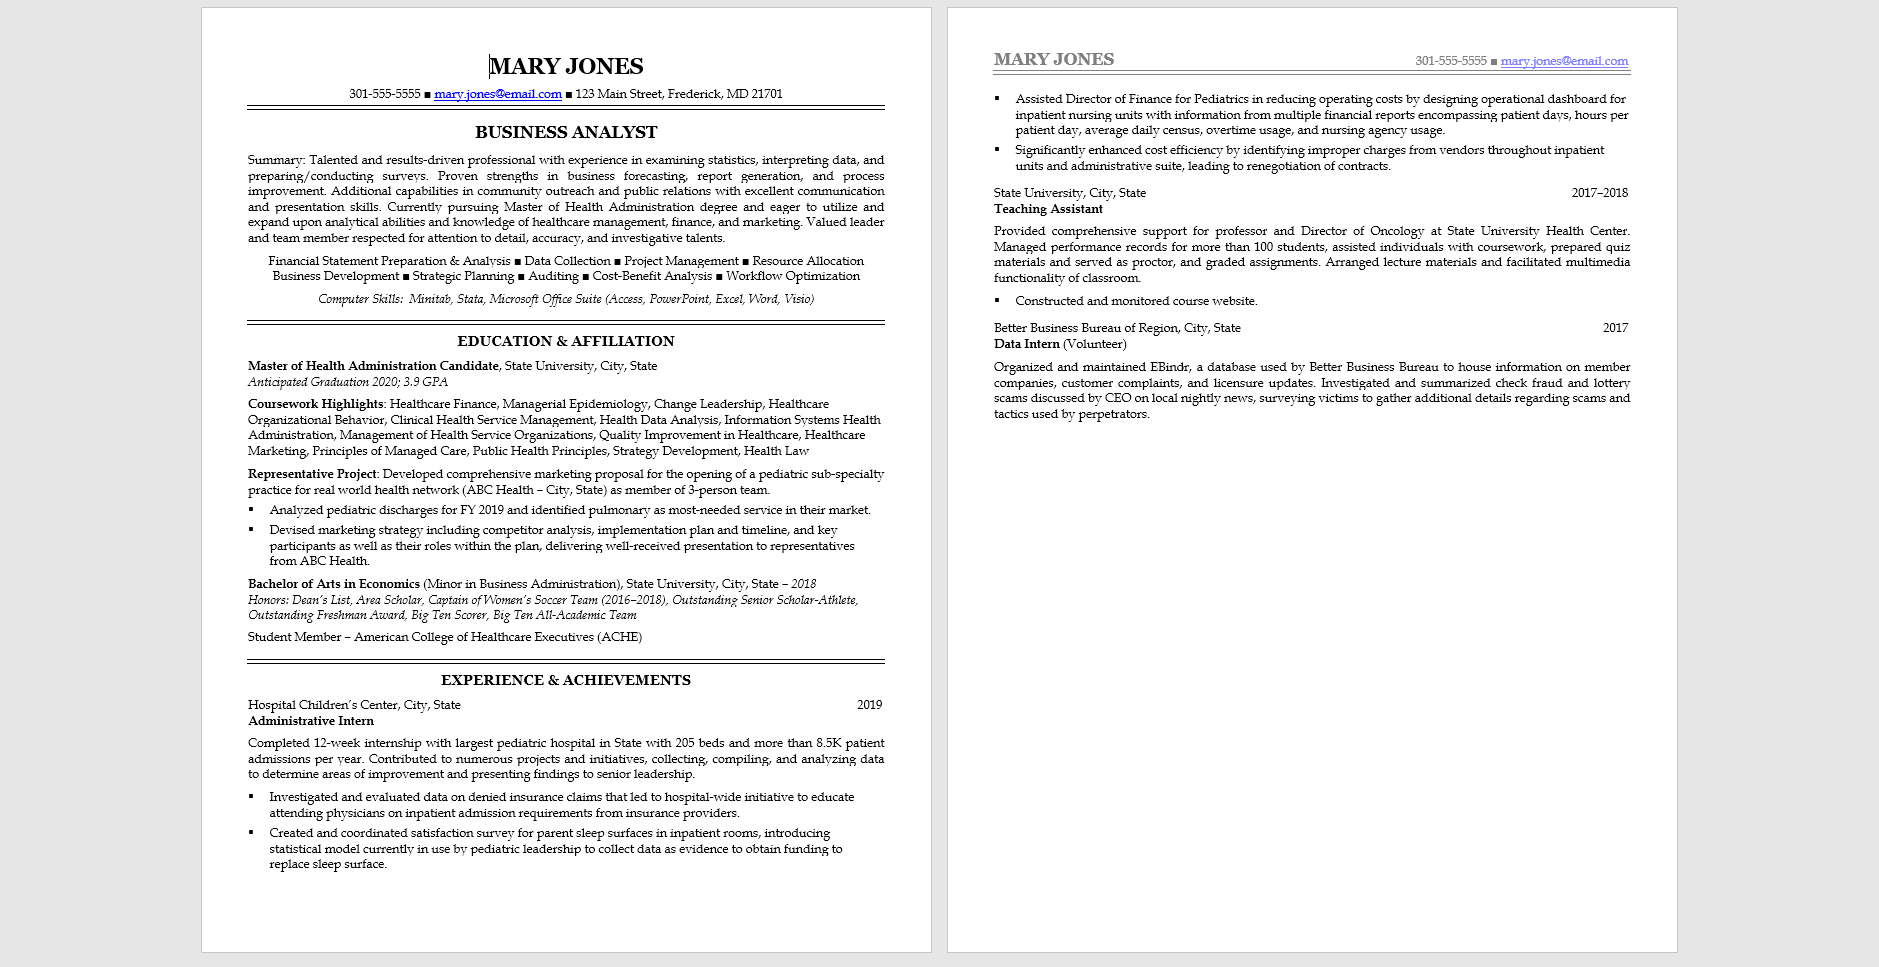 Sample resume using a combination of strategies